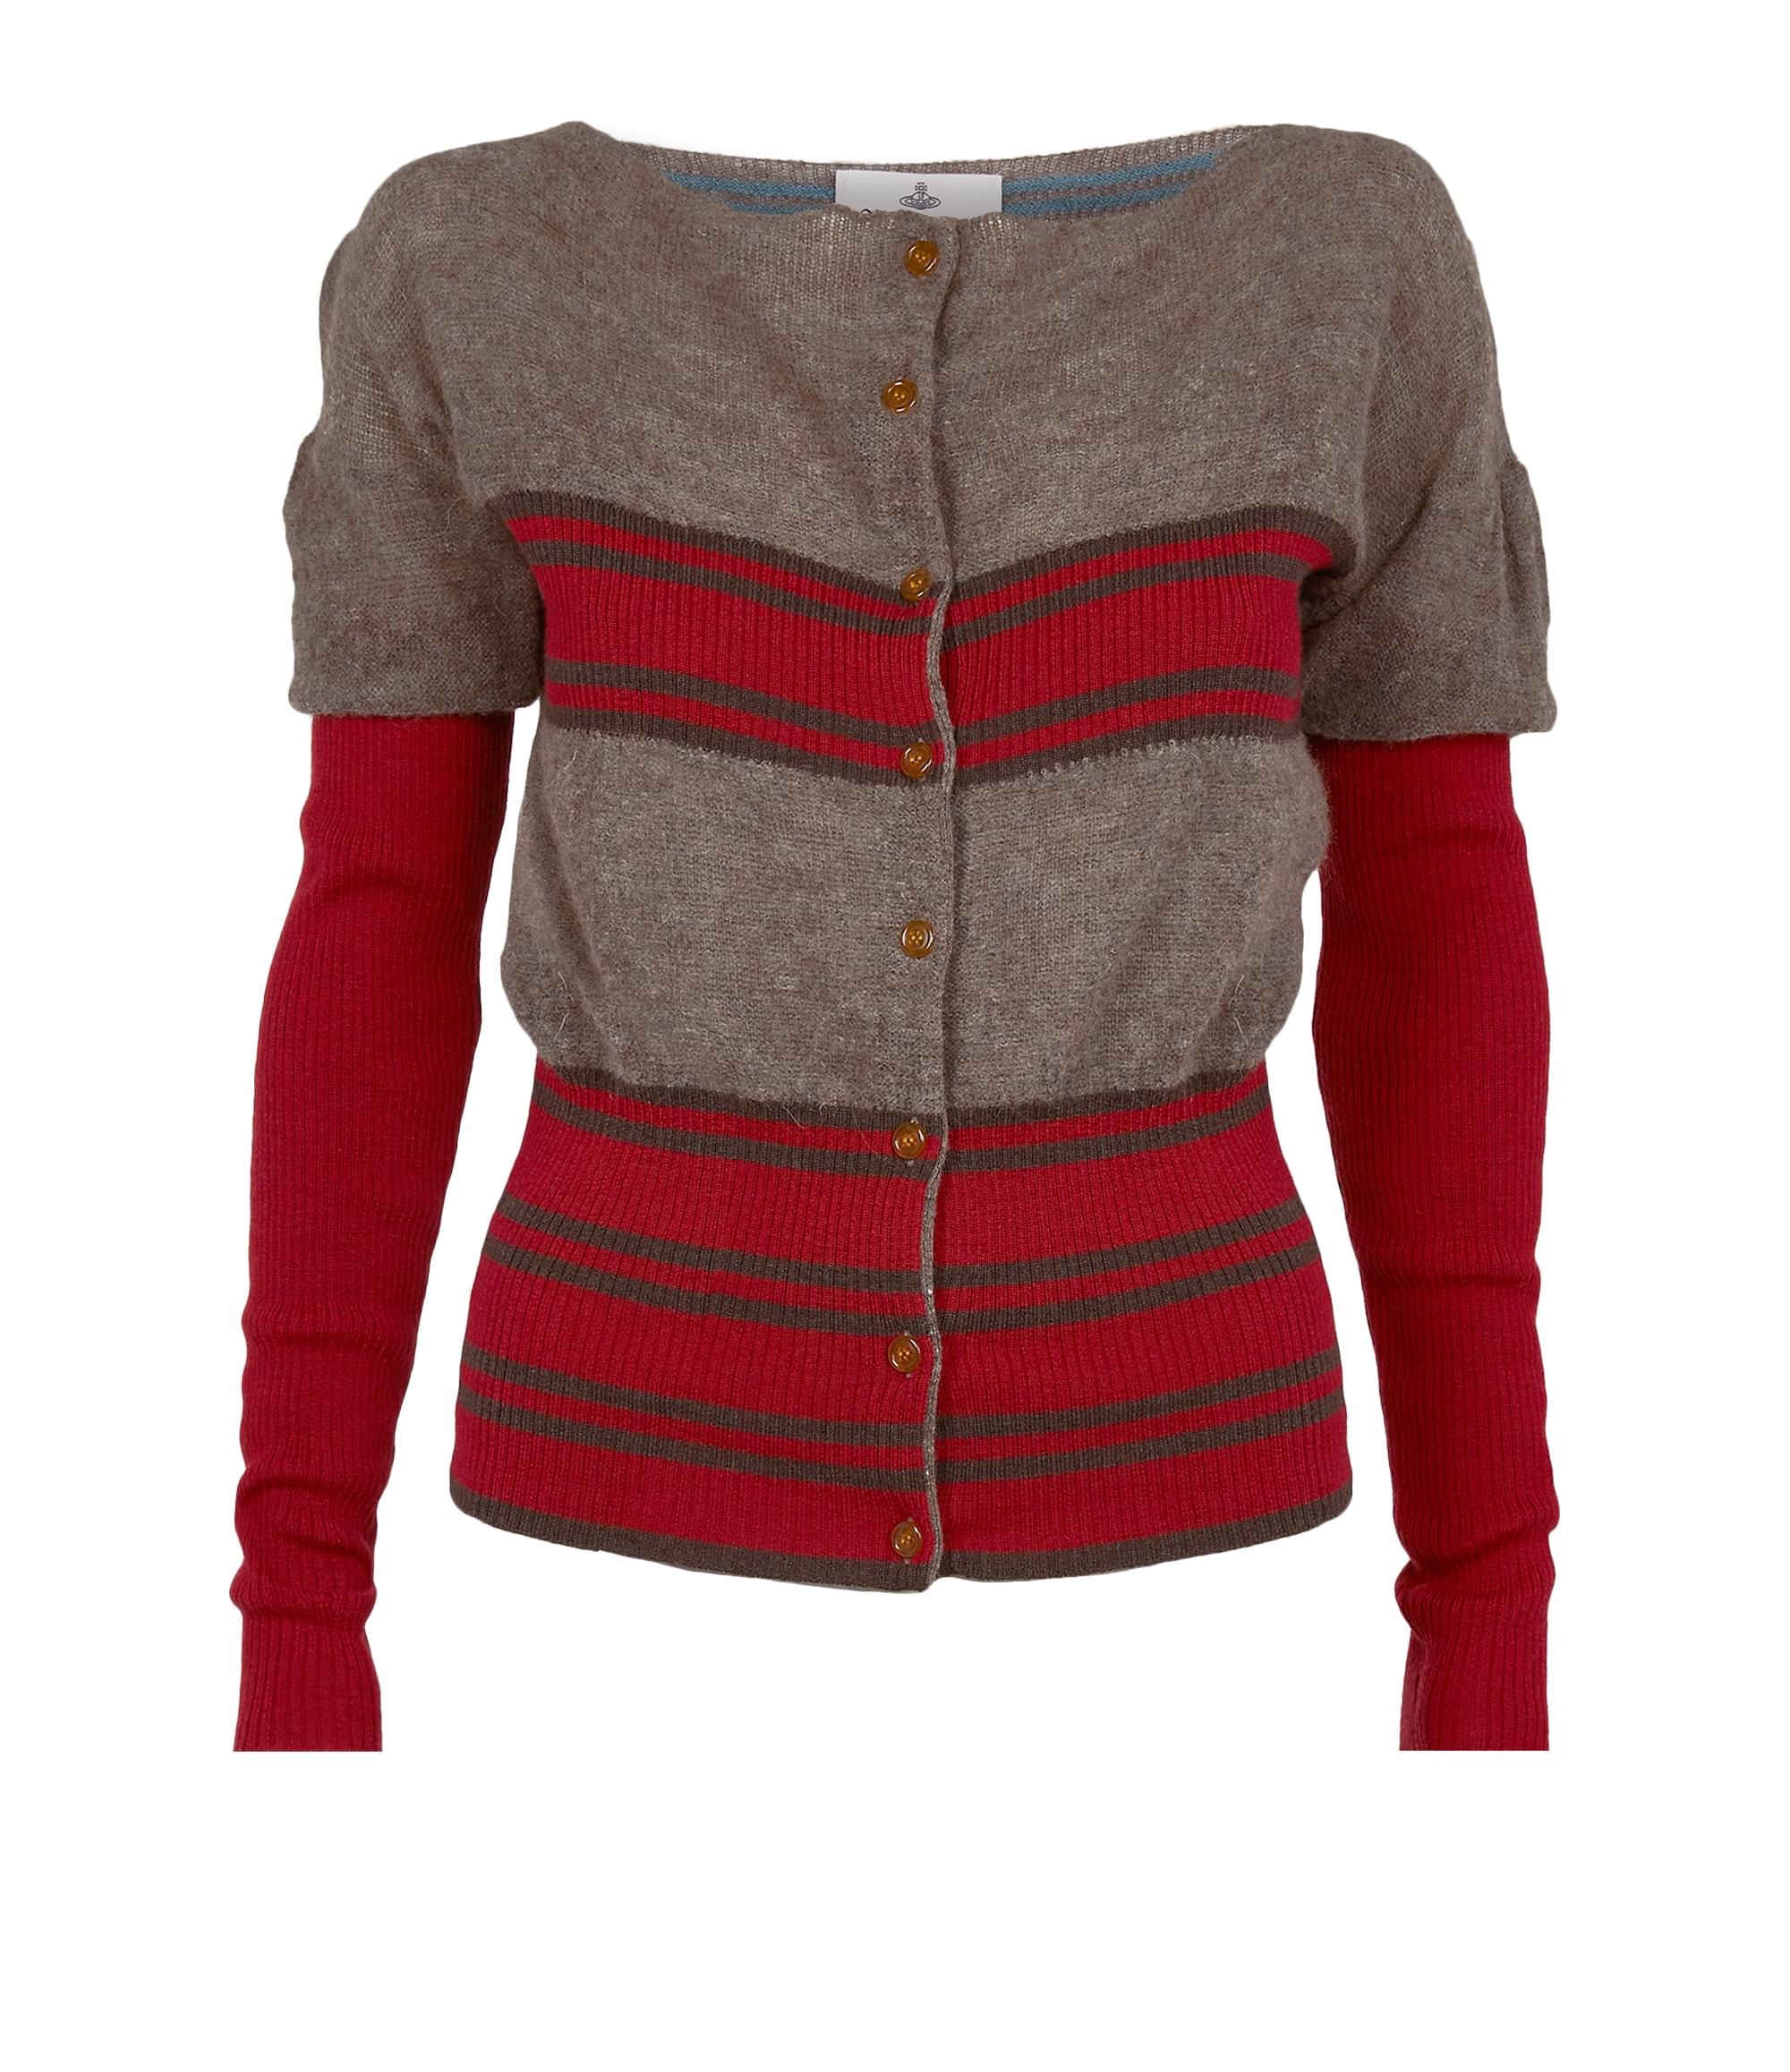 Vivienne Westwood Square Cardigan Red\/Brown Stripes